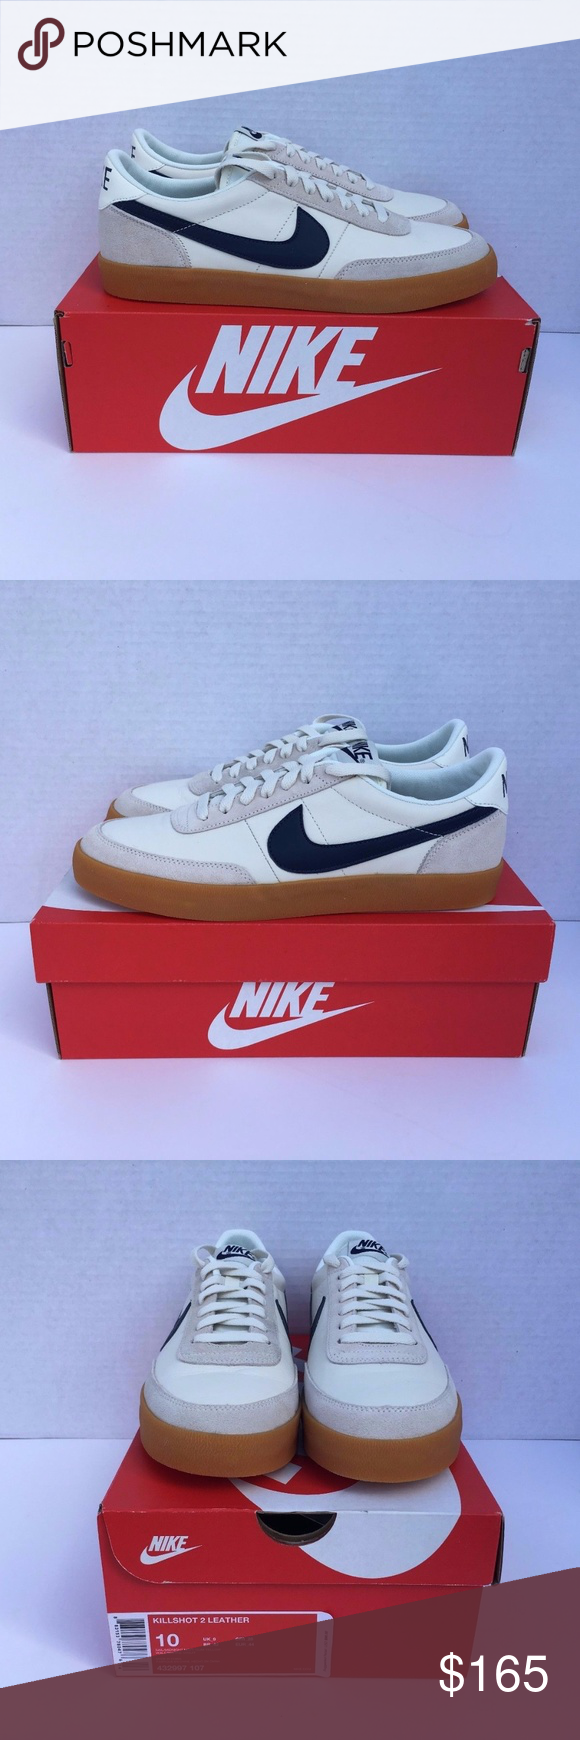 Nike x J. Crew Killshot 2 Leather The limited re-release of the Nike